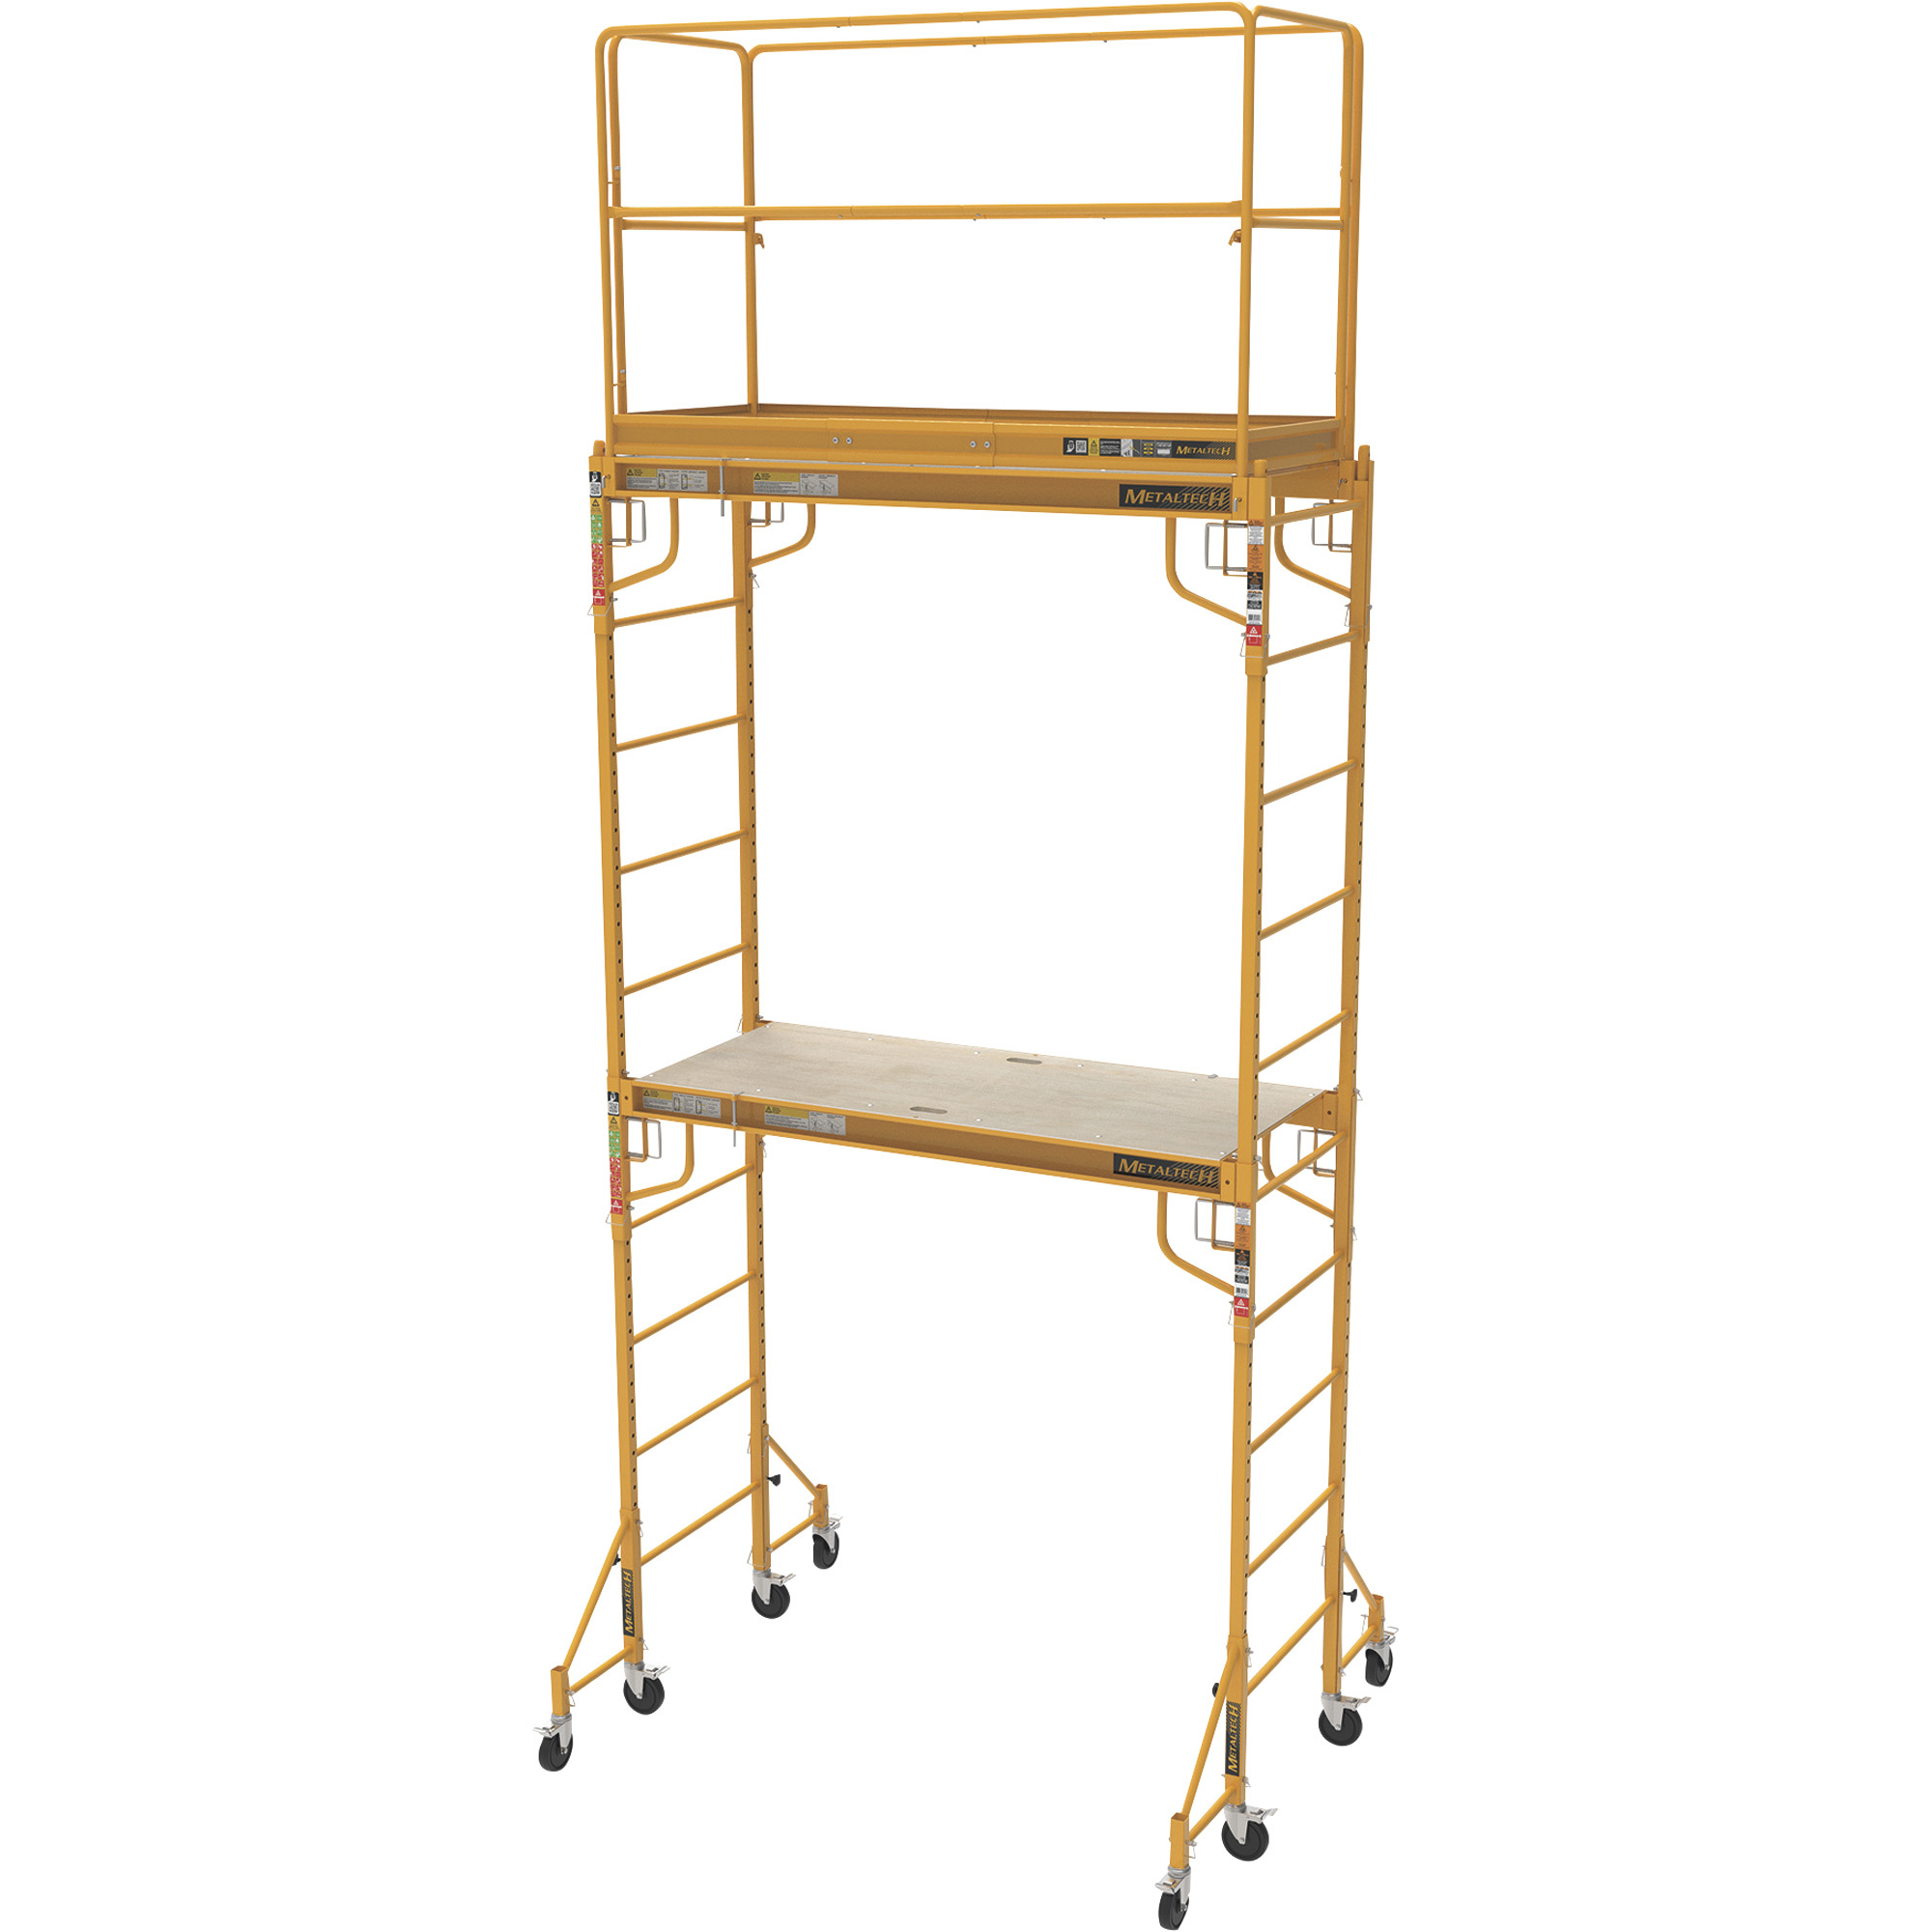 Metaltech Multipurpose Maxi Square Baker-Style Scaffold Tower Package u2014 12ft., 820-Lb. Capacity ...